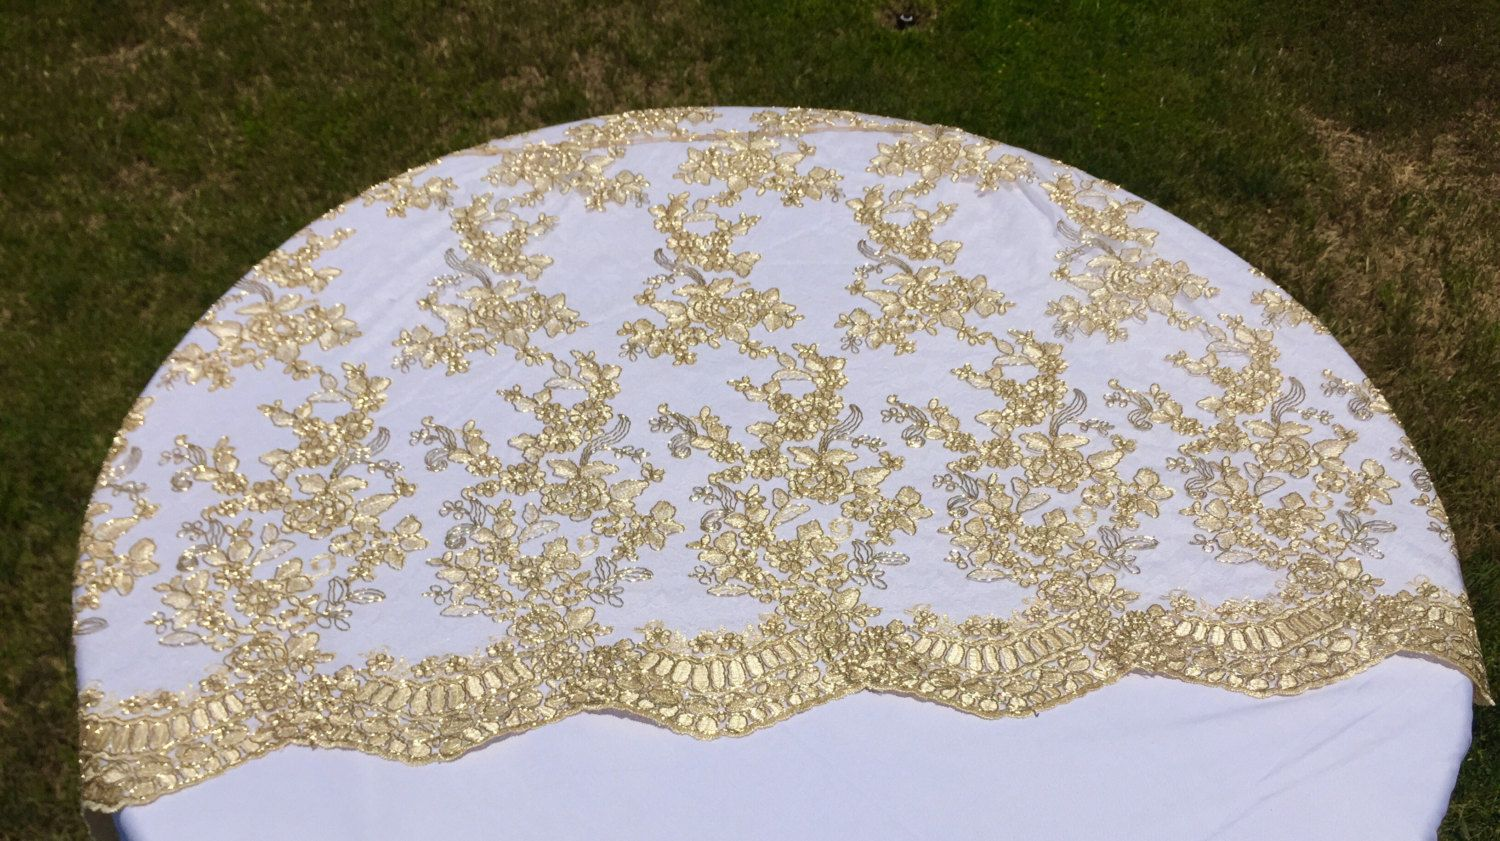 Vintage Wedding Table Cloth Gold Tablecloth Overlay Lace Tablecloth Table Runner Embroidered La Gold Tablecloth Vintage Wedding Table Table Runners Wedding